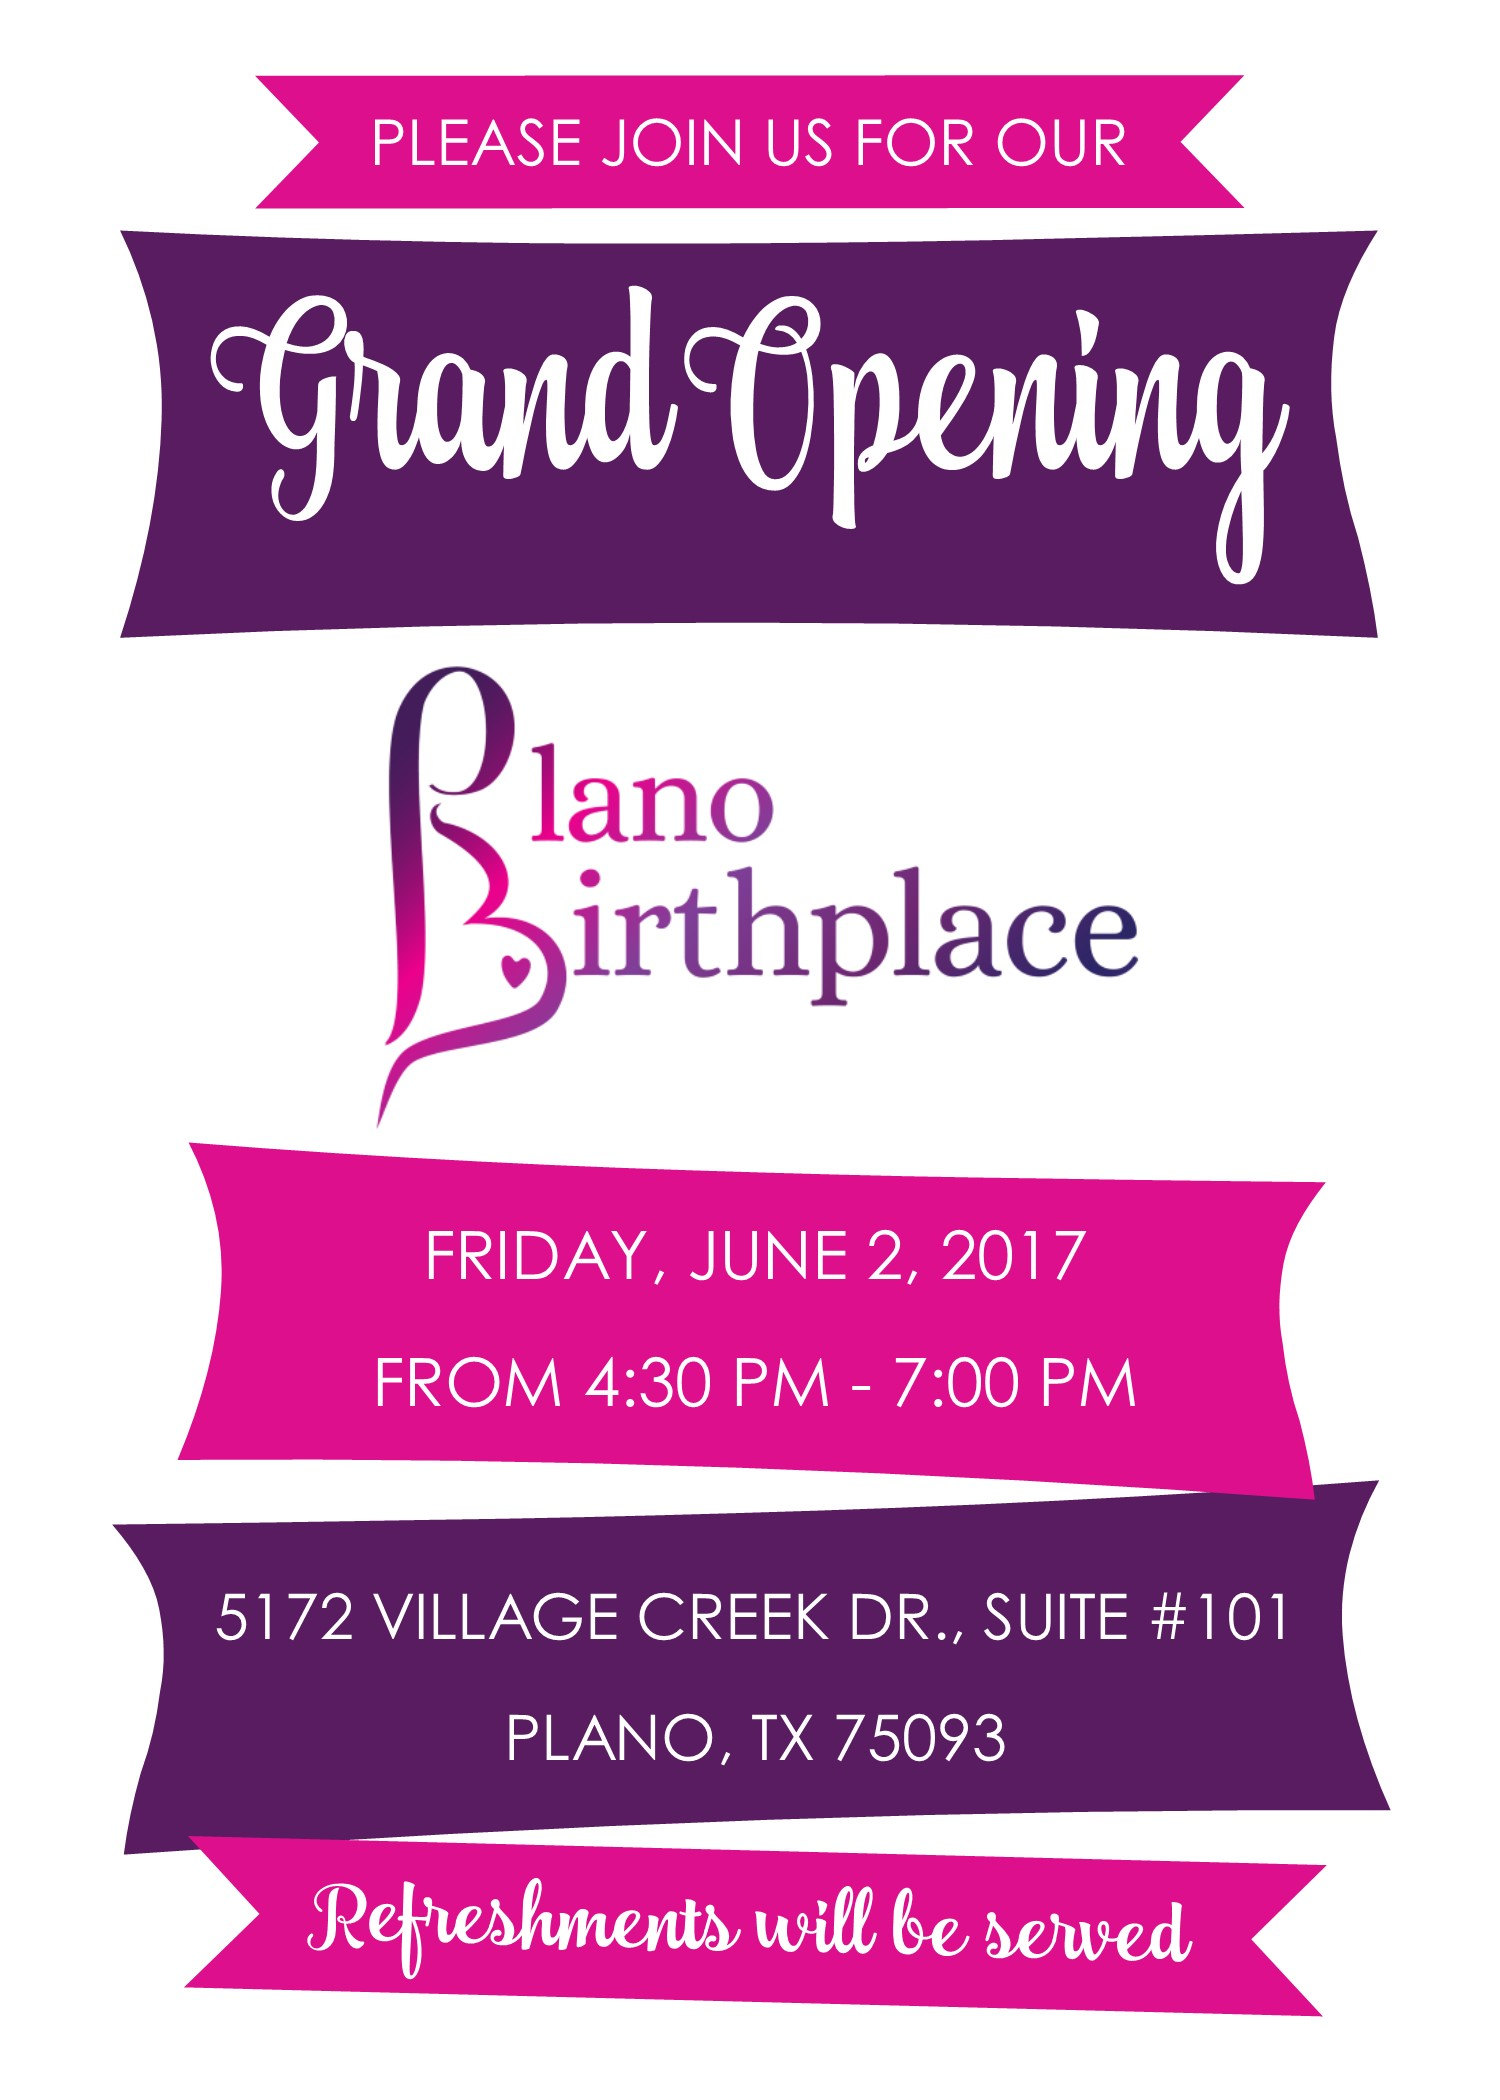 plano-birthplace-birth-center-grand-opening-party